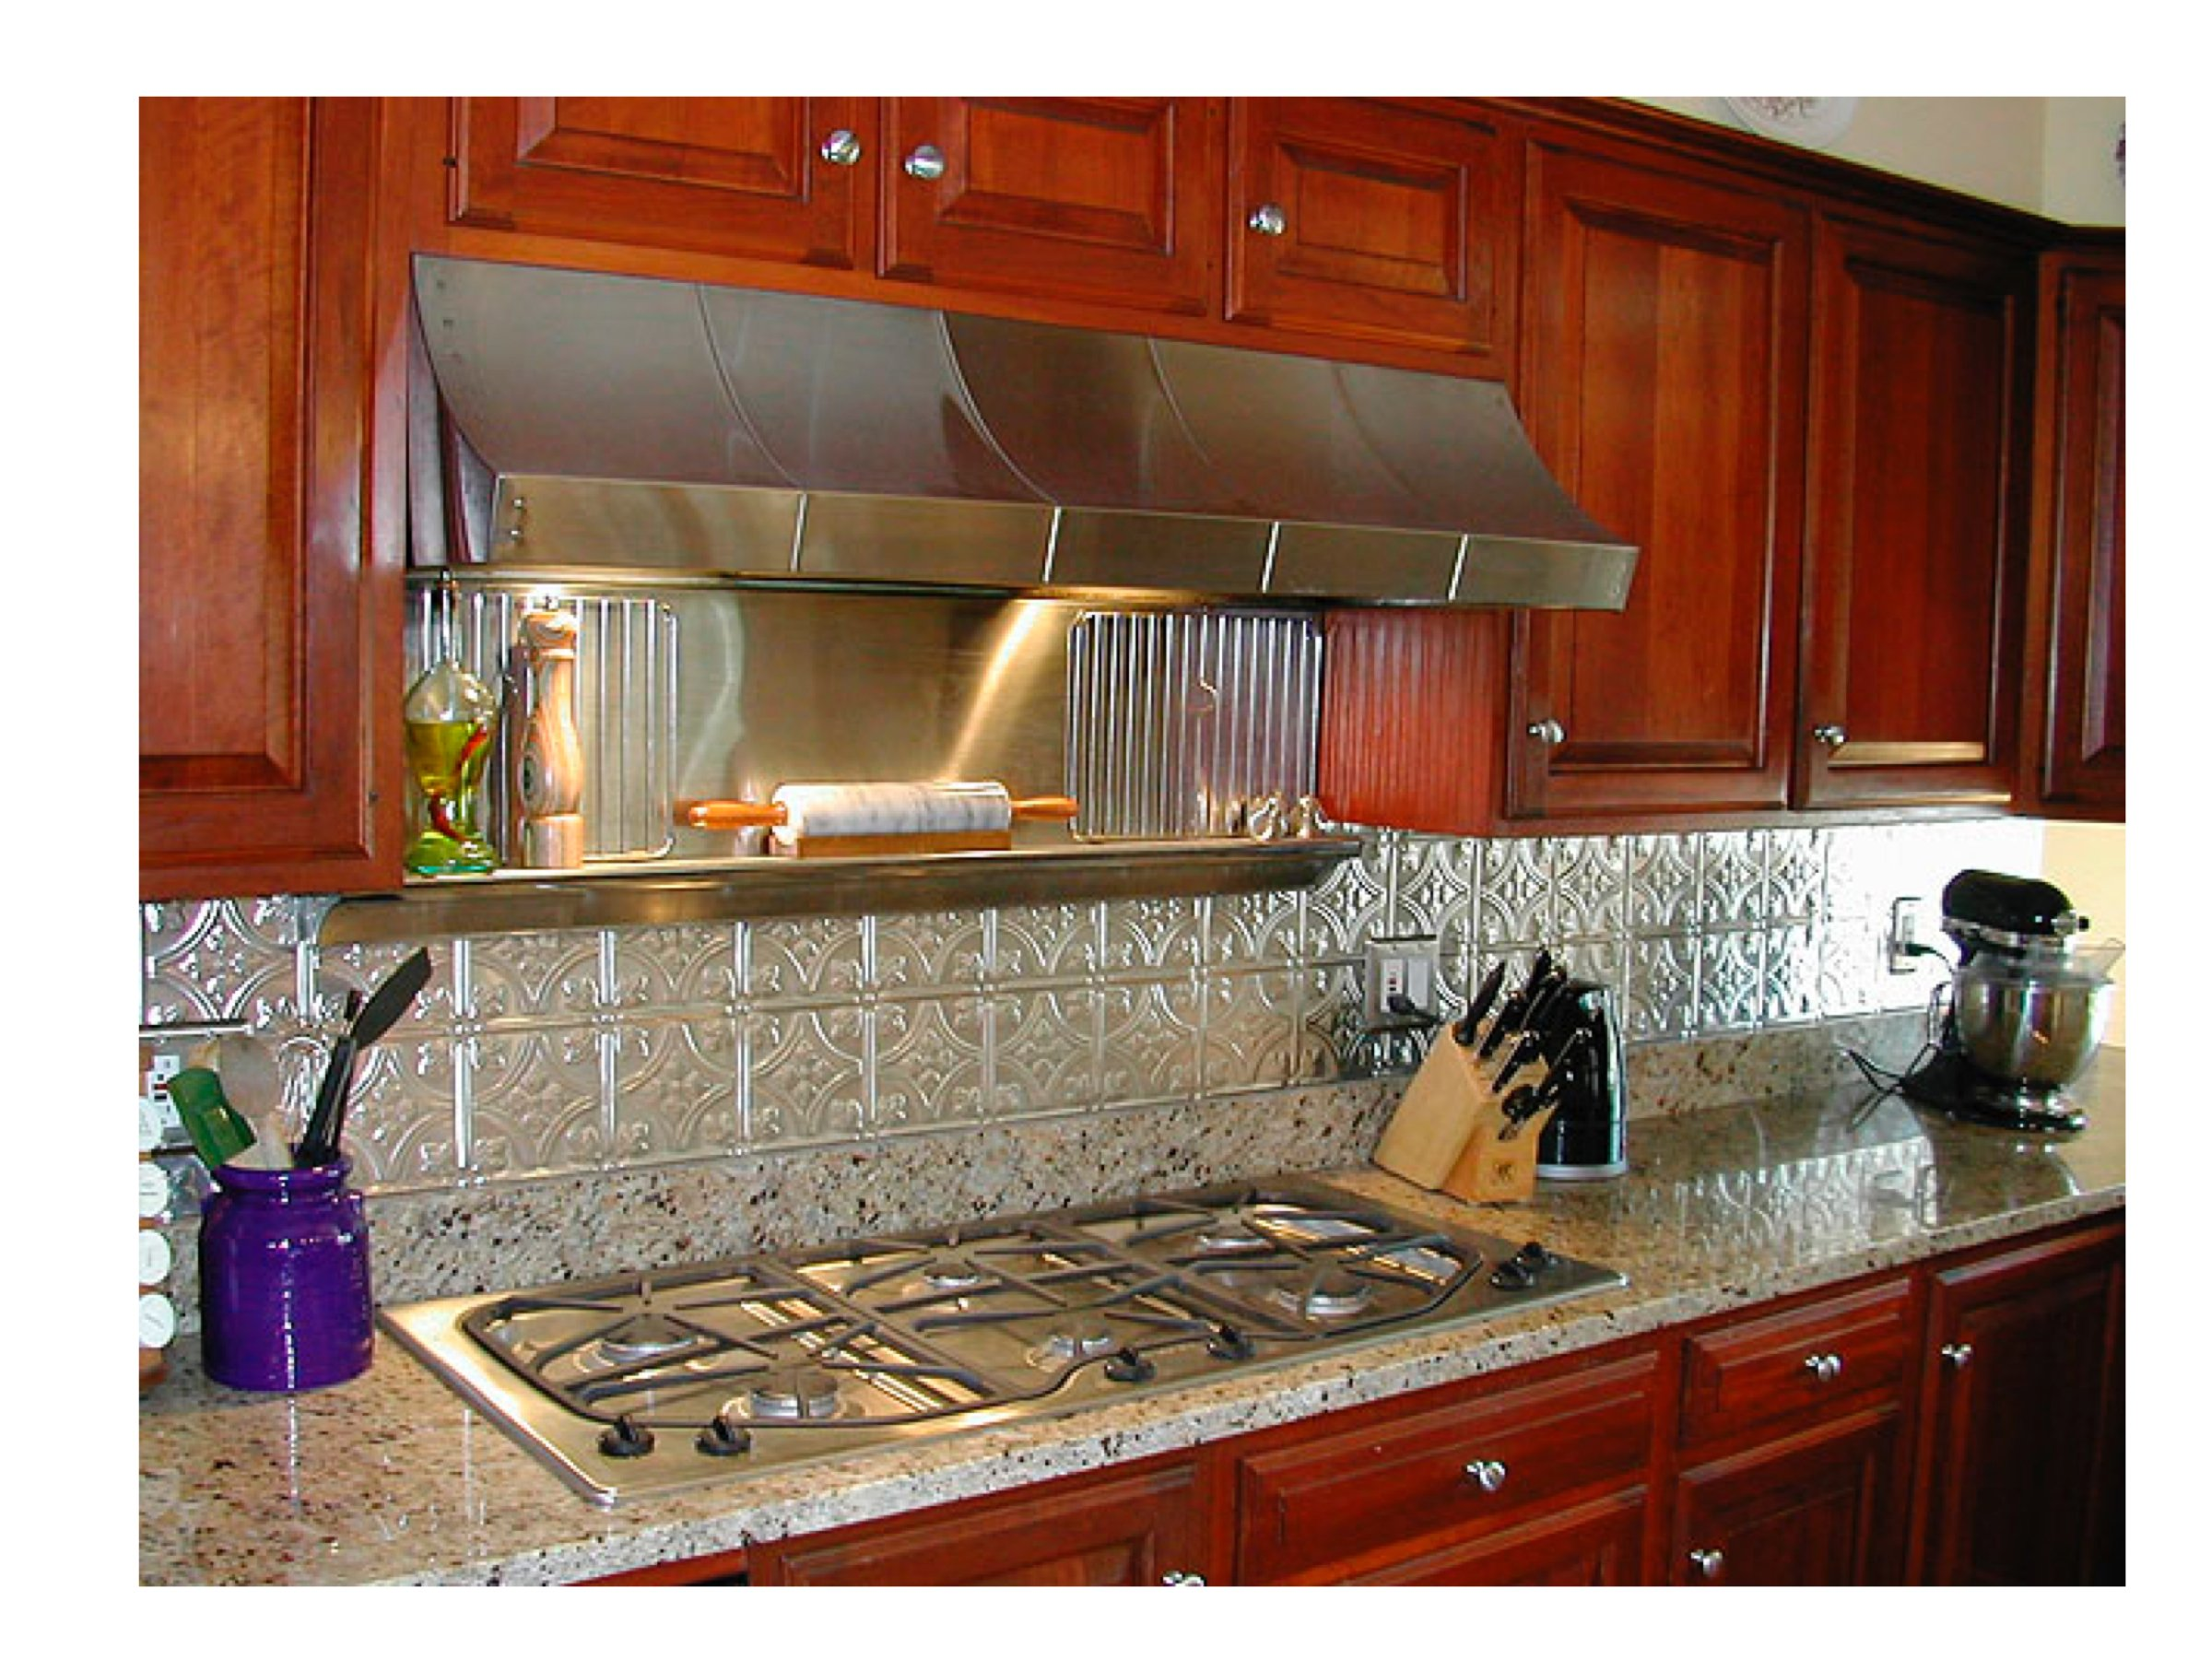 Kitchen backsplash ideas decorative tin tiles metal Backslash ideas